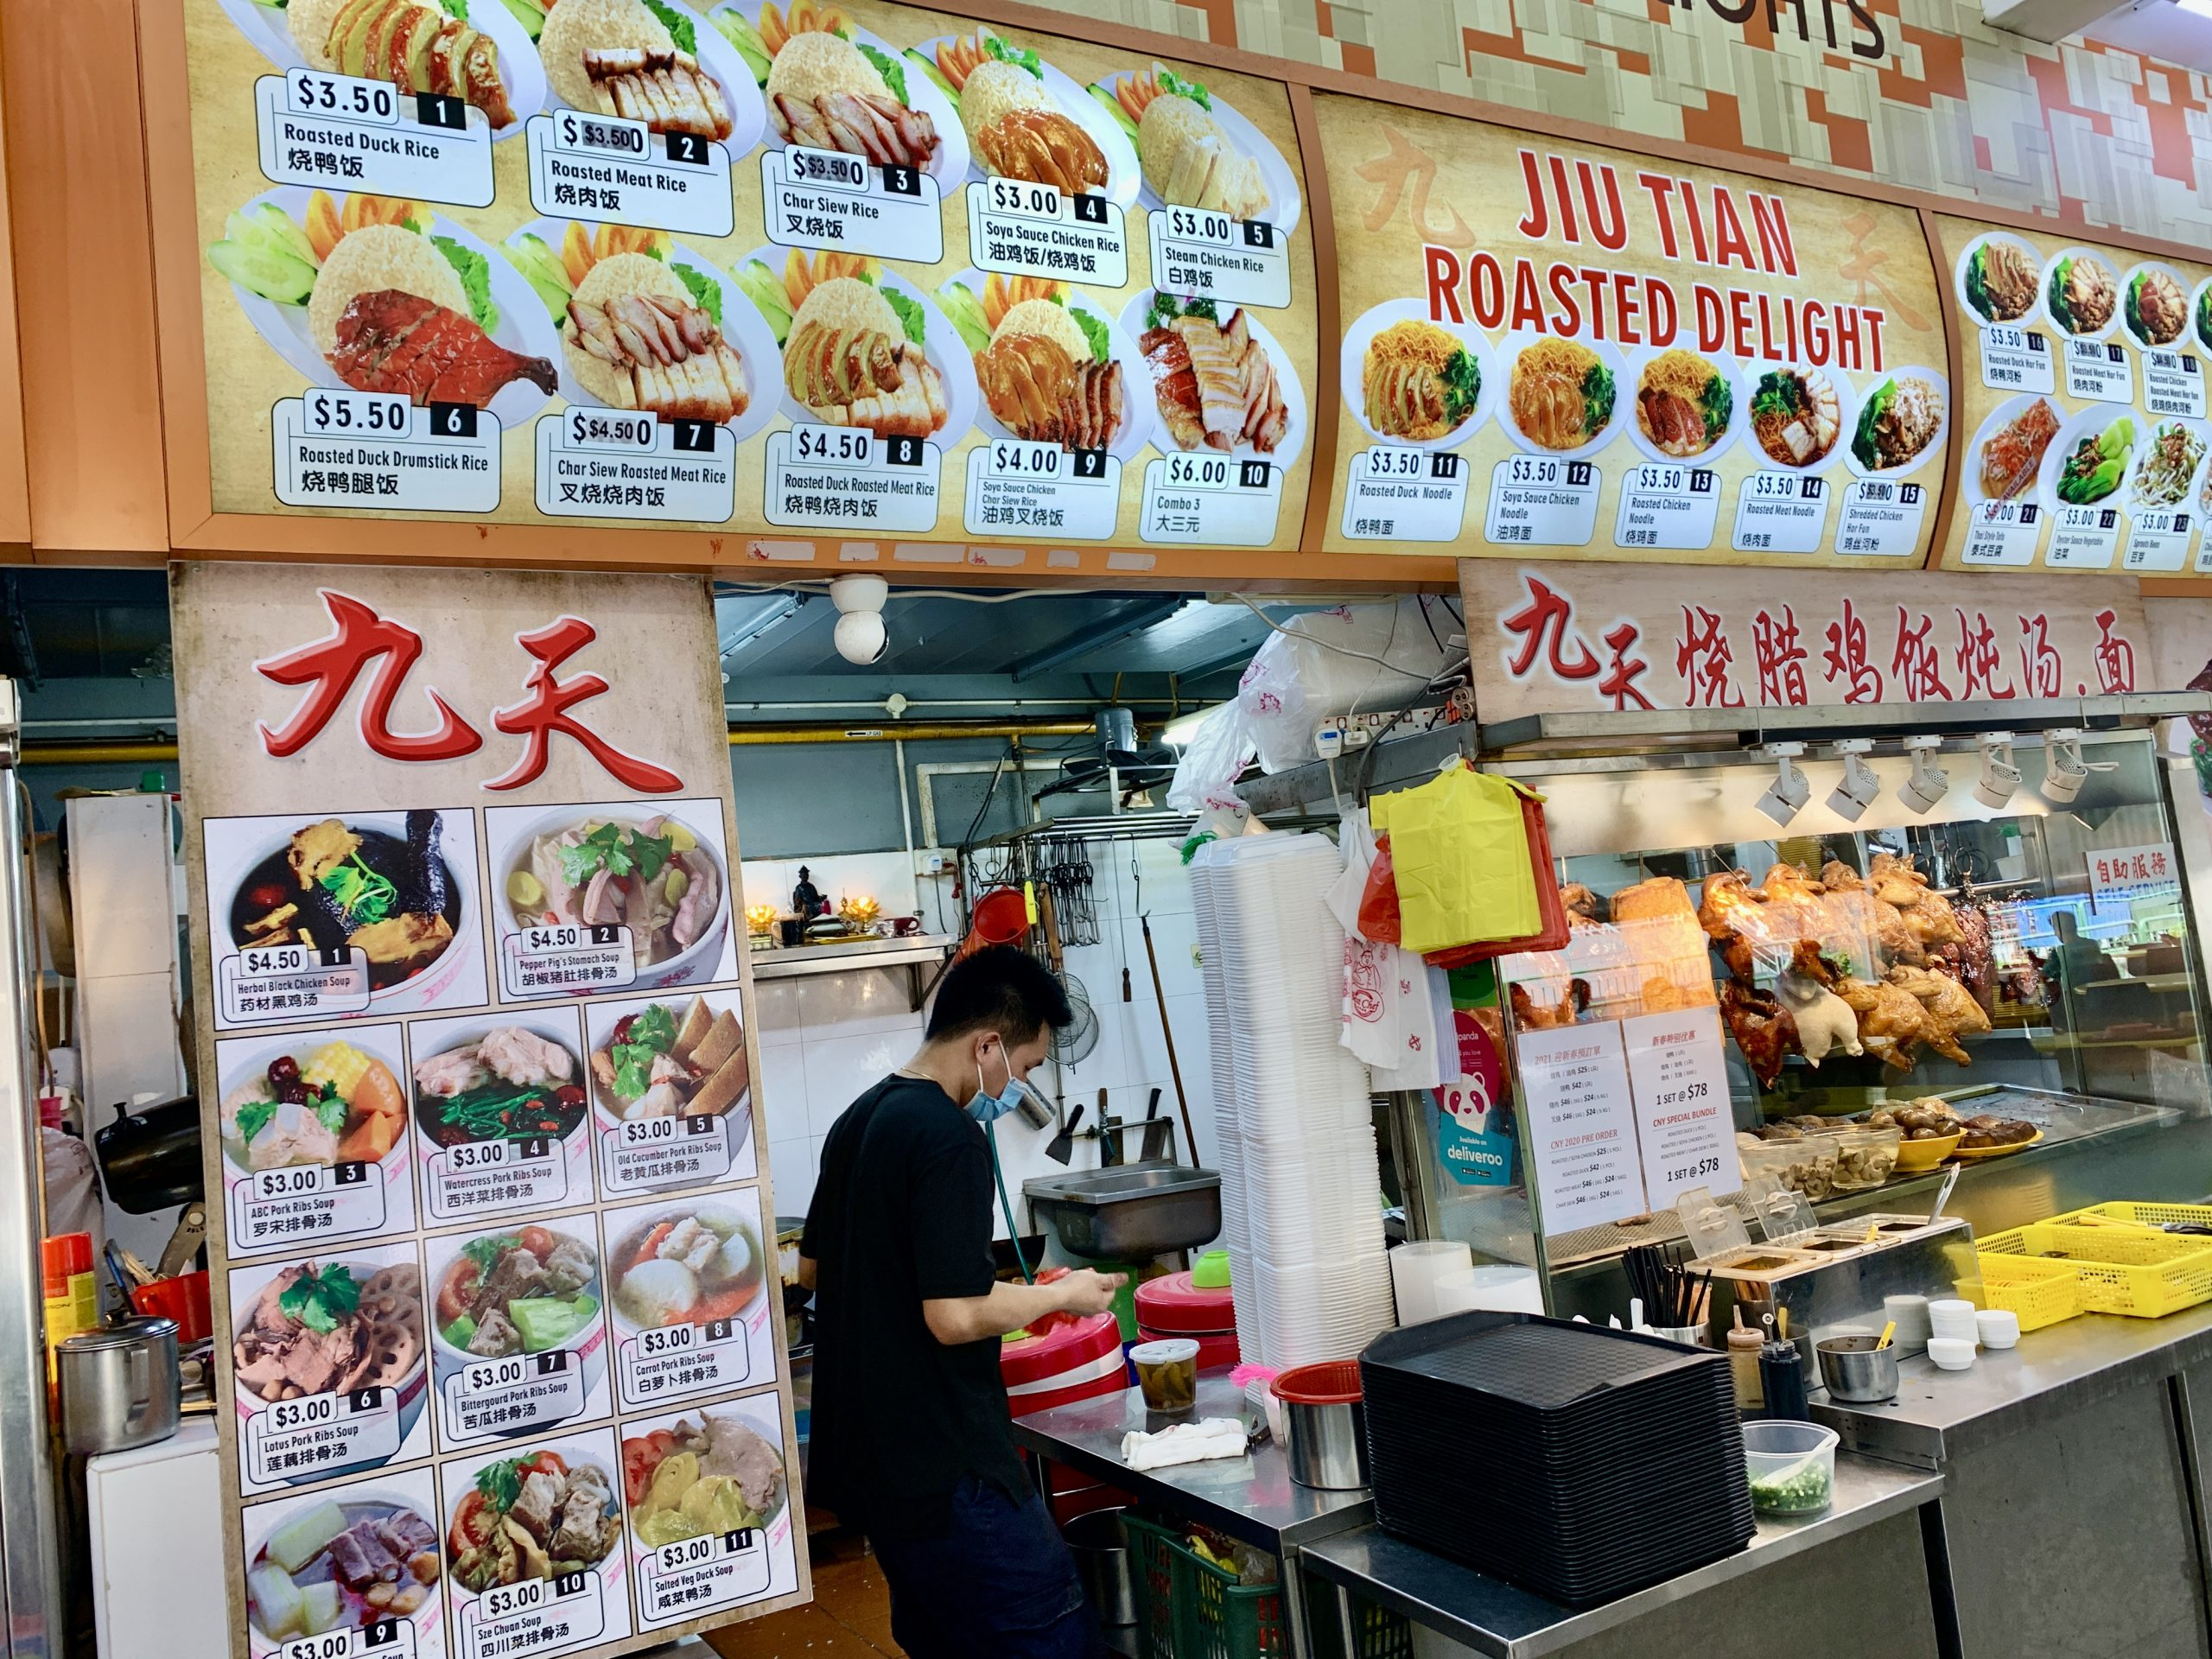 Jiu Tian Roasted Delights @ 727 E Coast Road Hawker